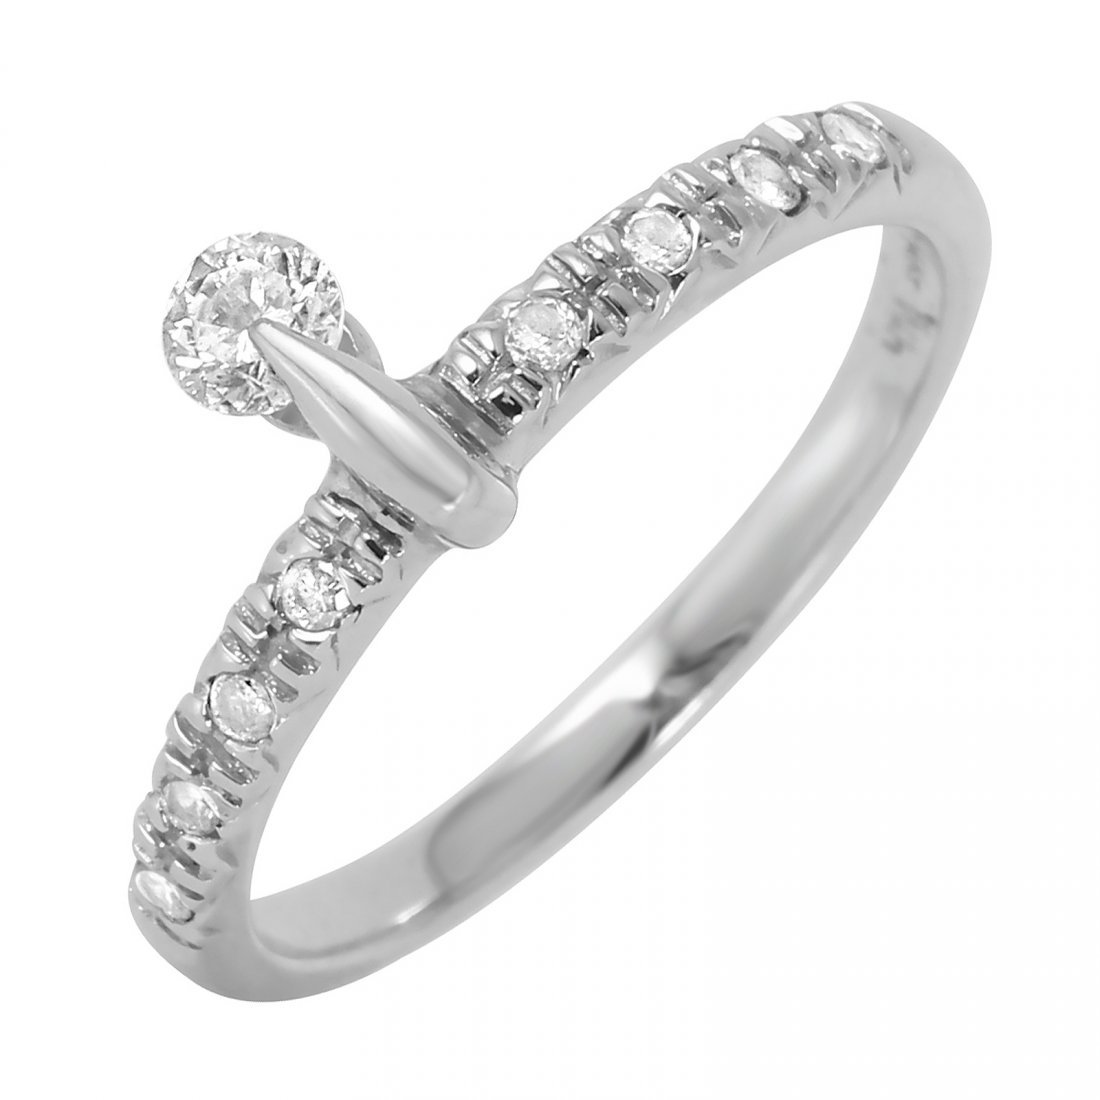 14KT White Gold Diamond Ring, 0.18 ctw